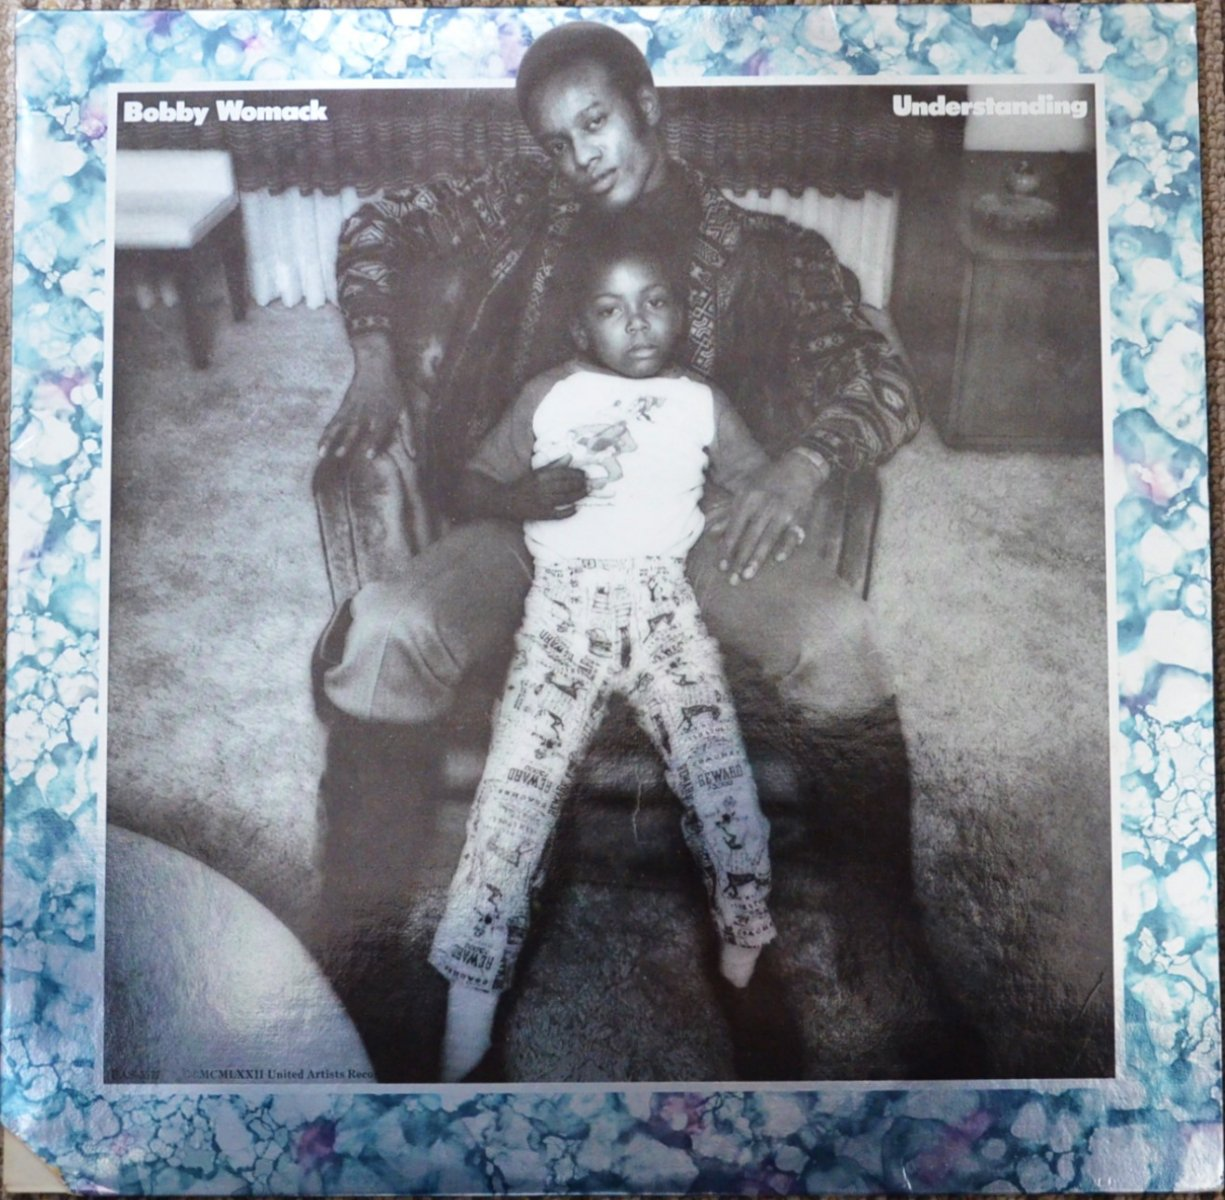 BOBBY WOMACK / UNDERSTANDING (LP)